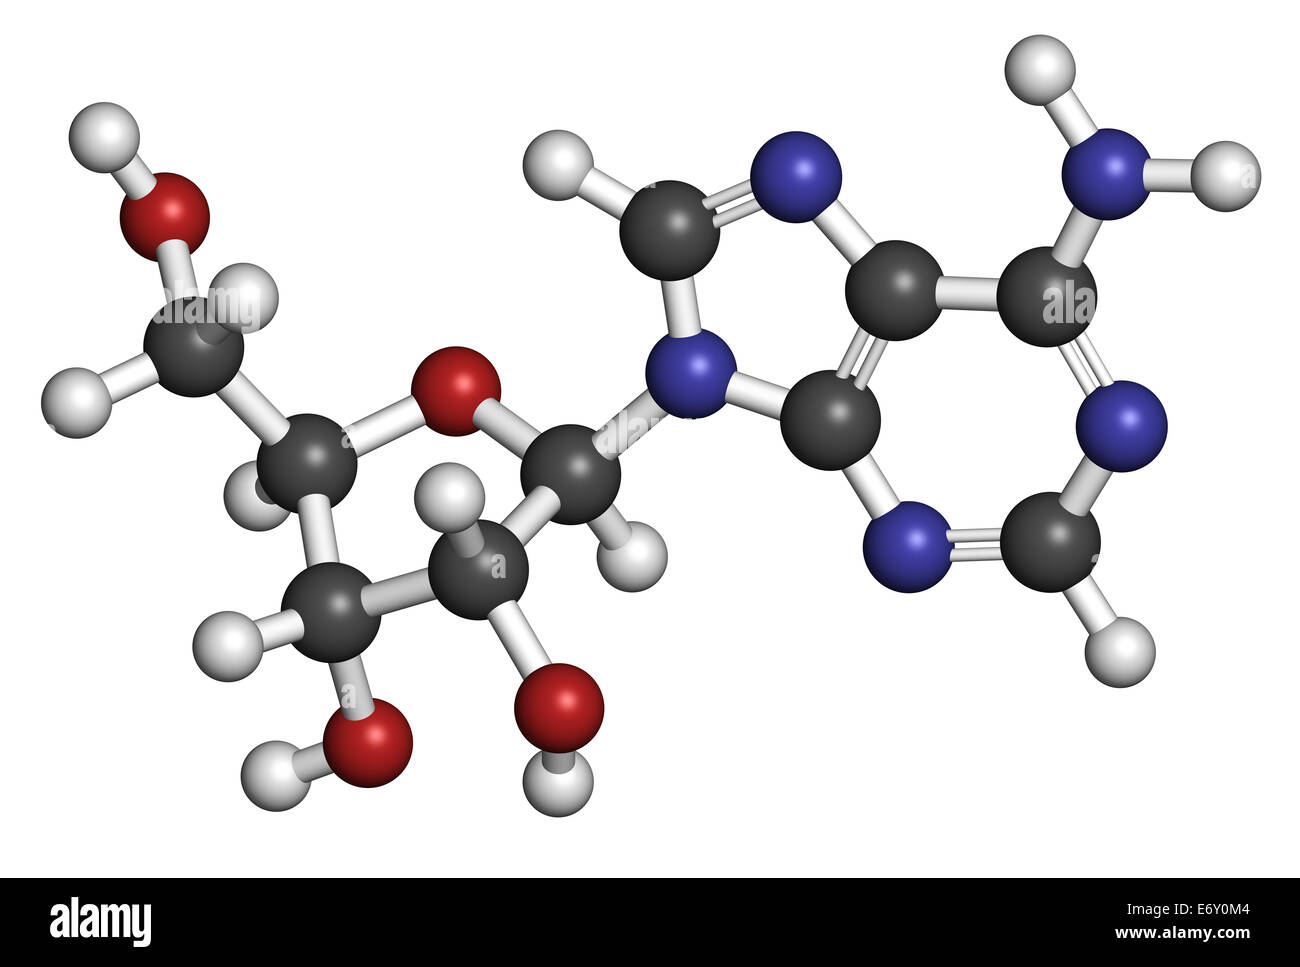 Adenosine (Ado) purine nucleoside molecule. Important component of ATP, ADP, cAMP and RNA. Also used as drug. Atoms - Stock Image